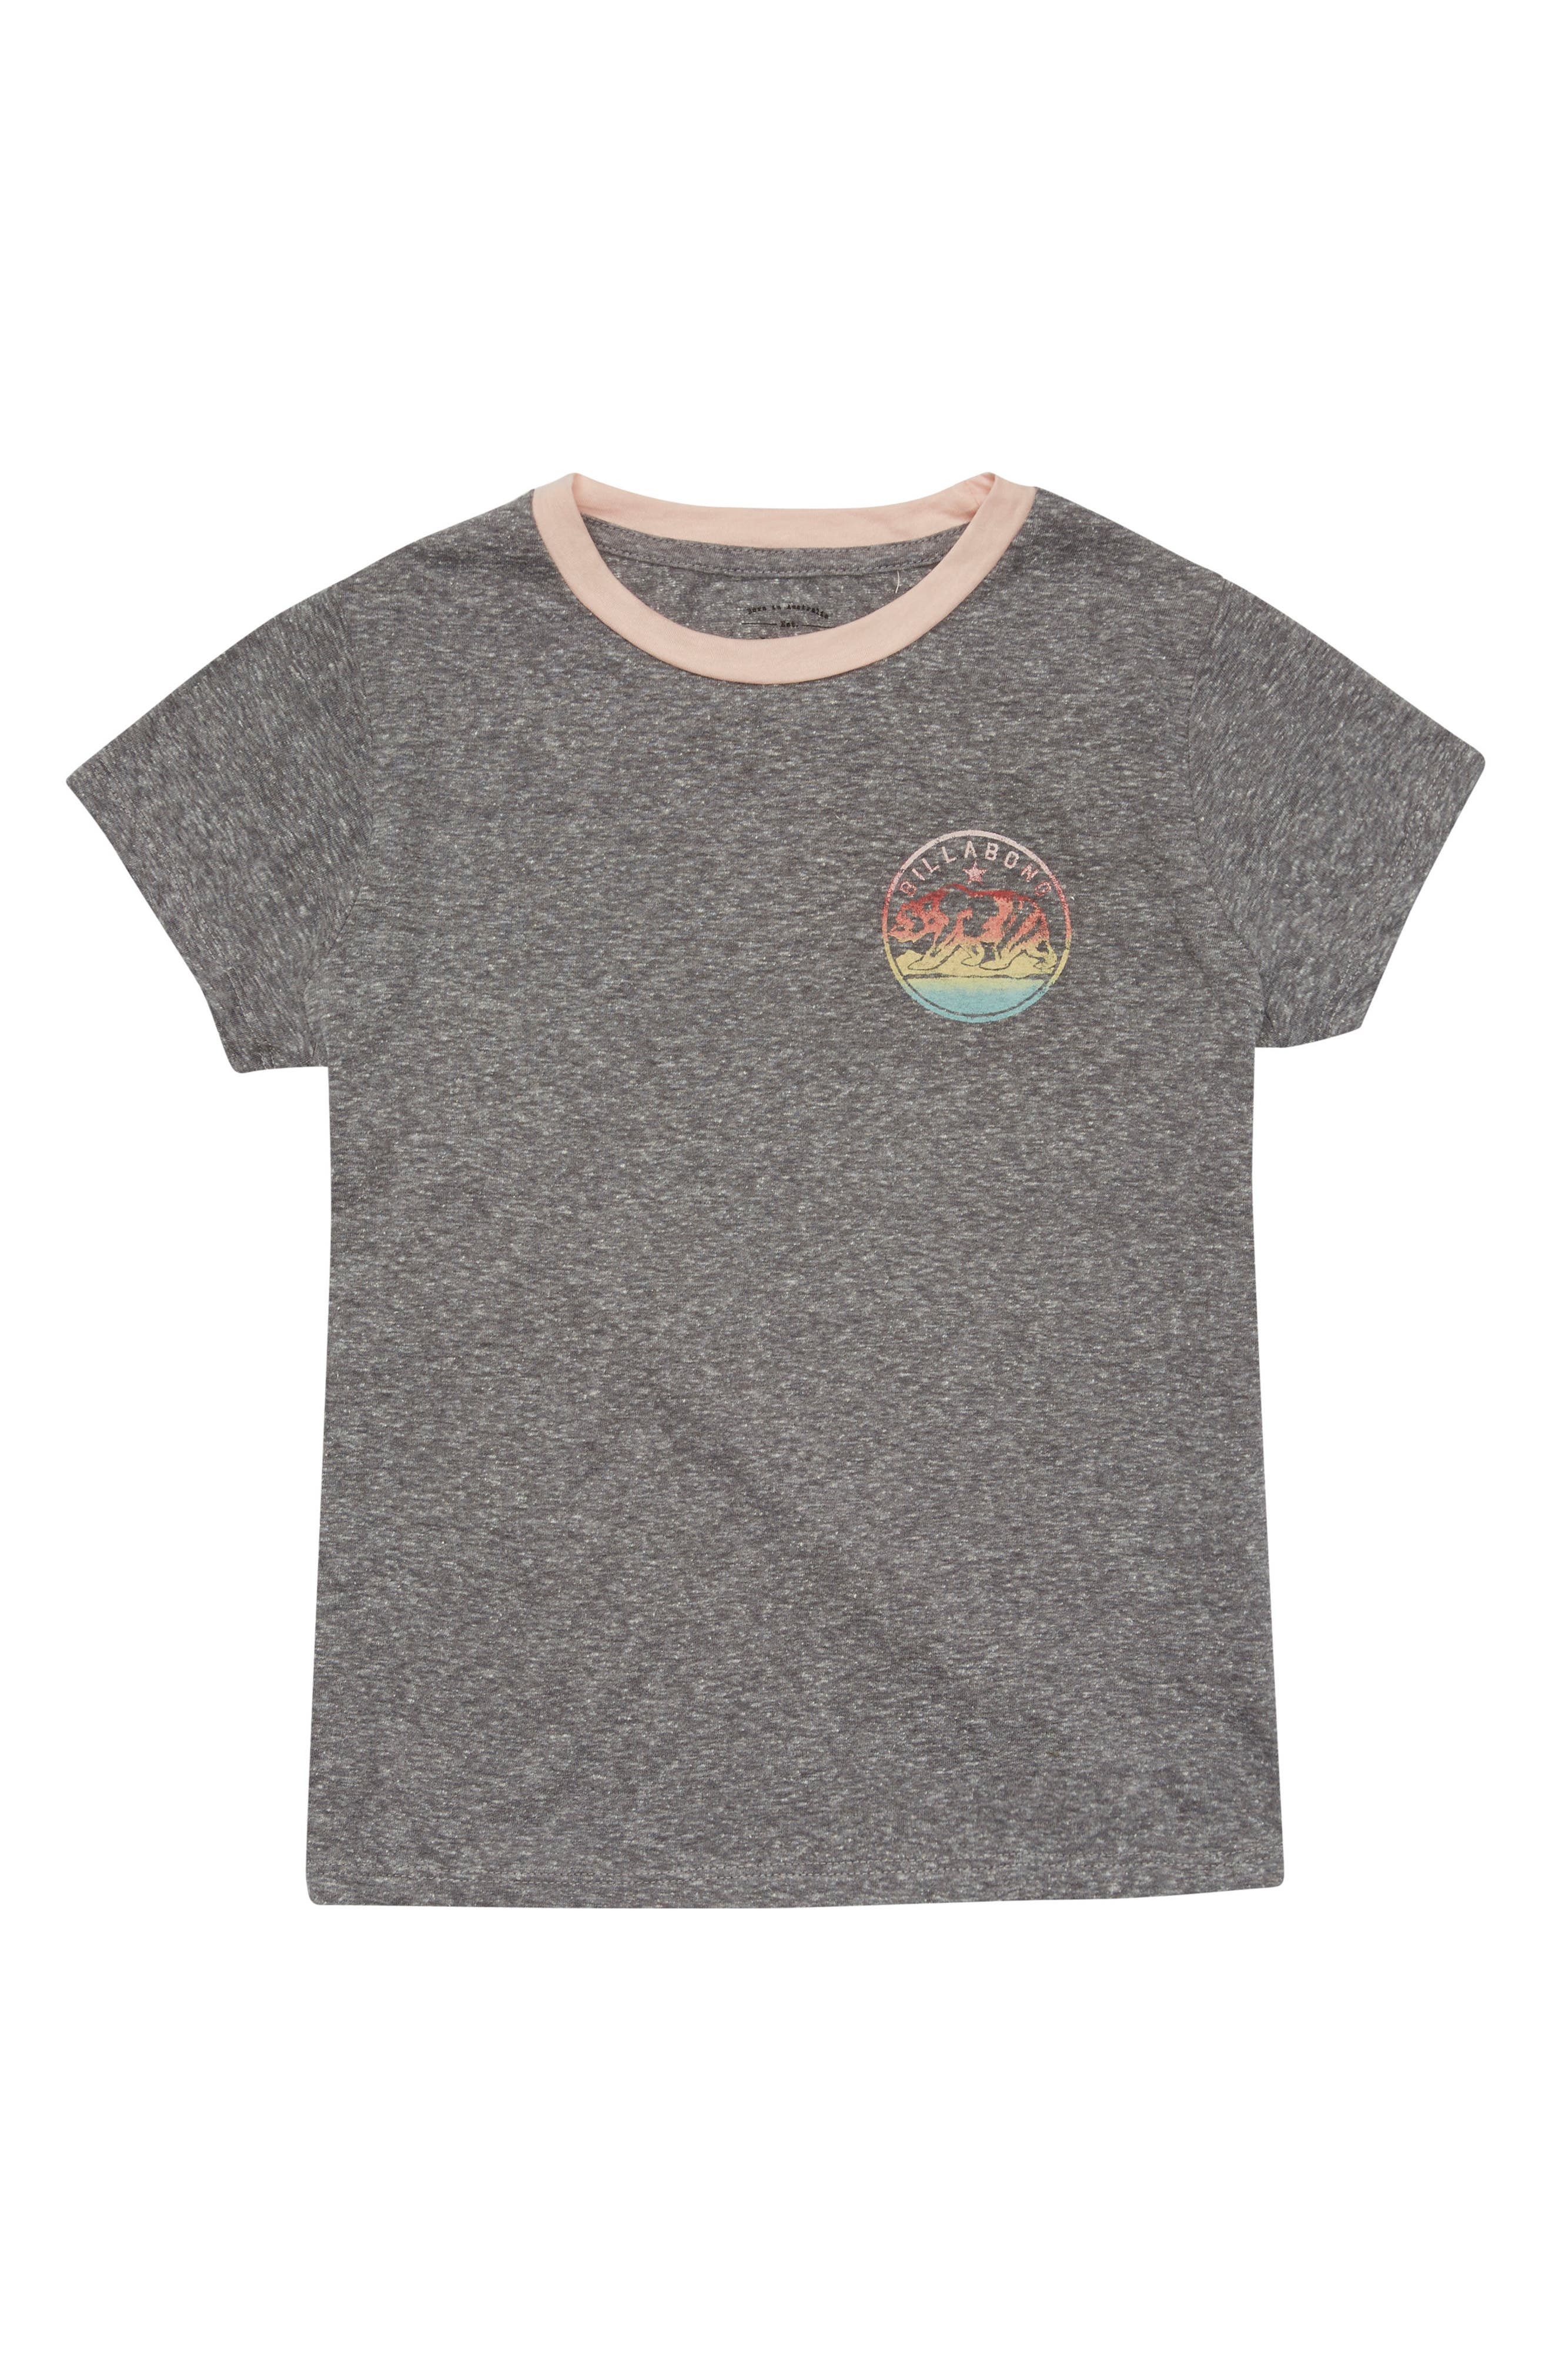 Bear Stamp Graphic Tee,                             Main thumbnail 1, color,                             Dark Athletic Grey